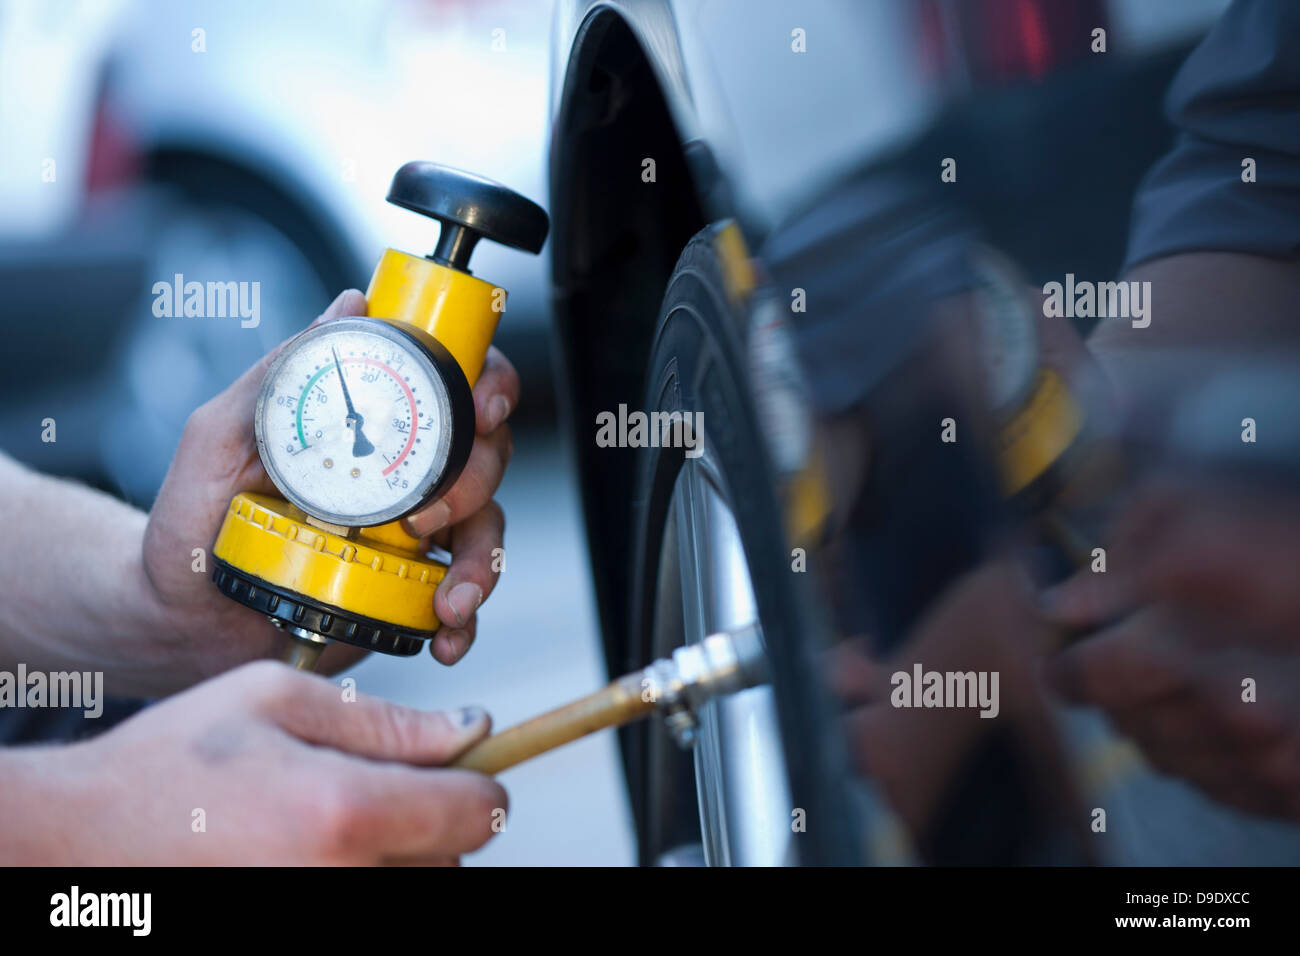 Person using pressure gauge - Stock Image